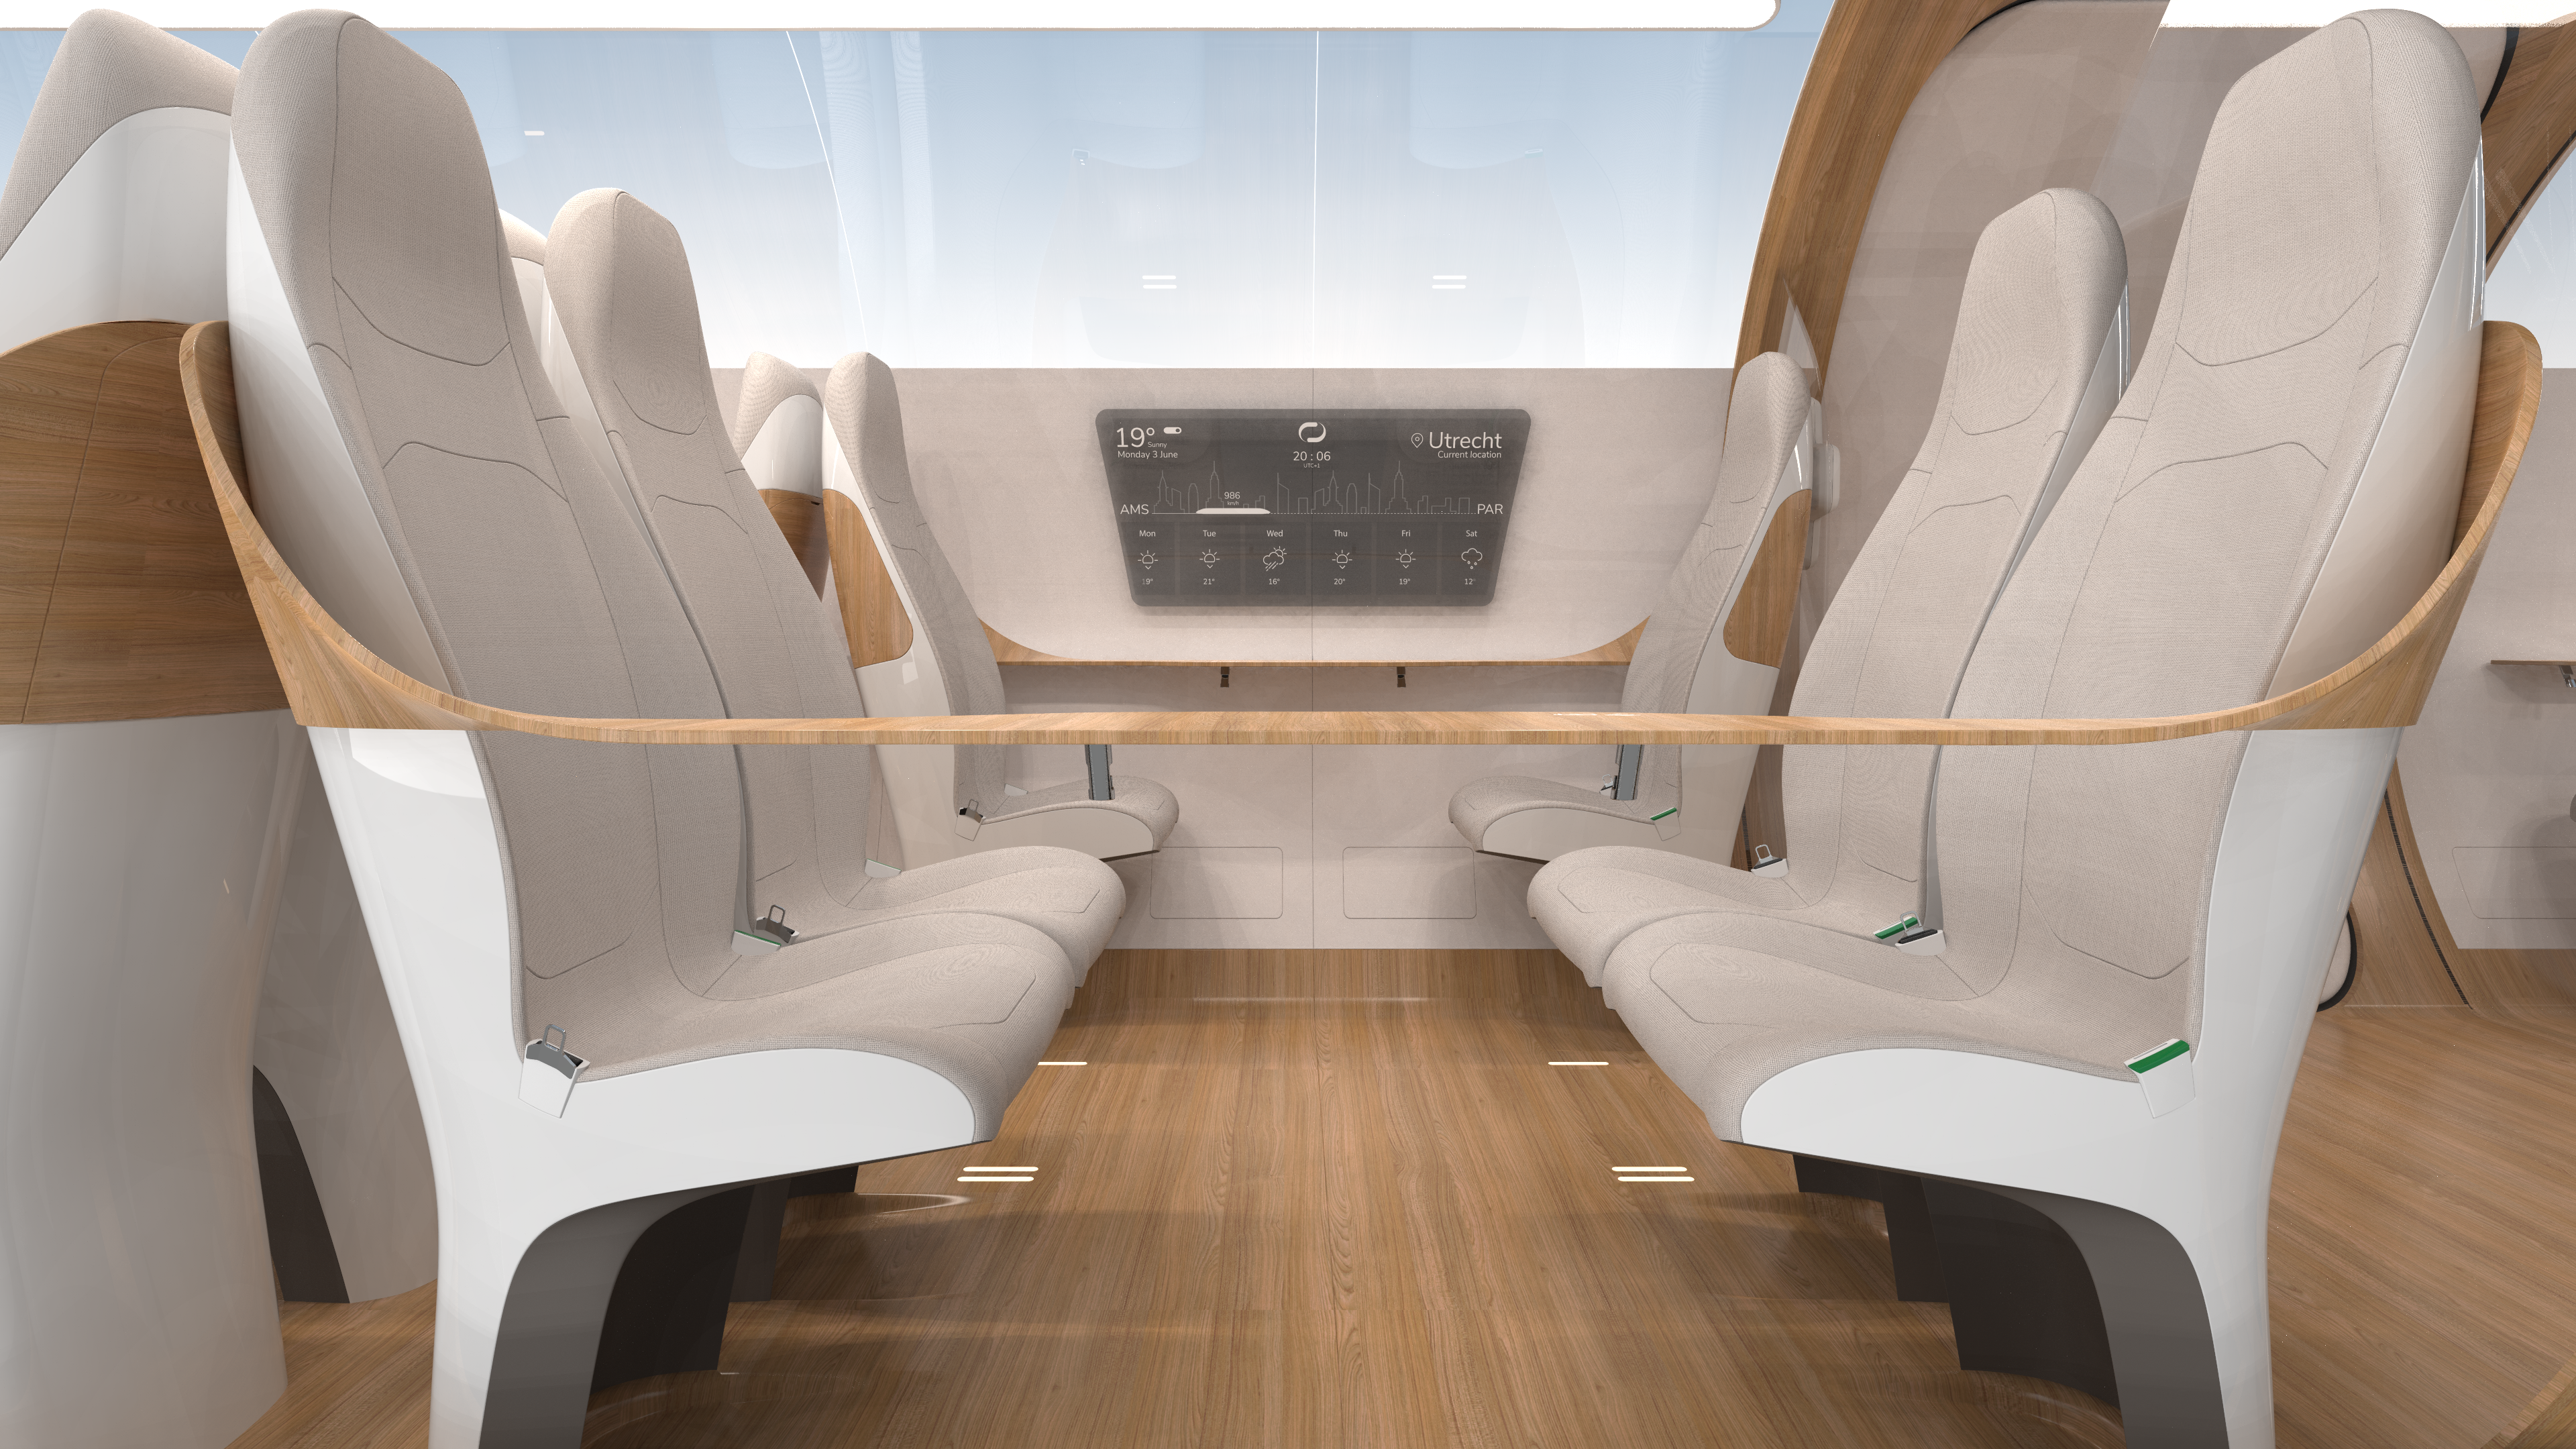 Hyperloop interieur